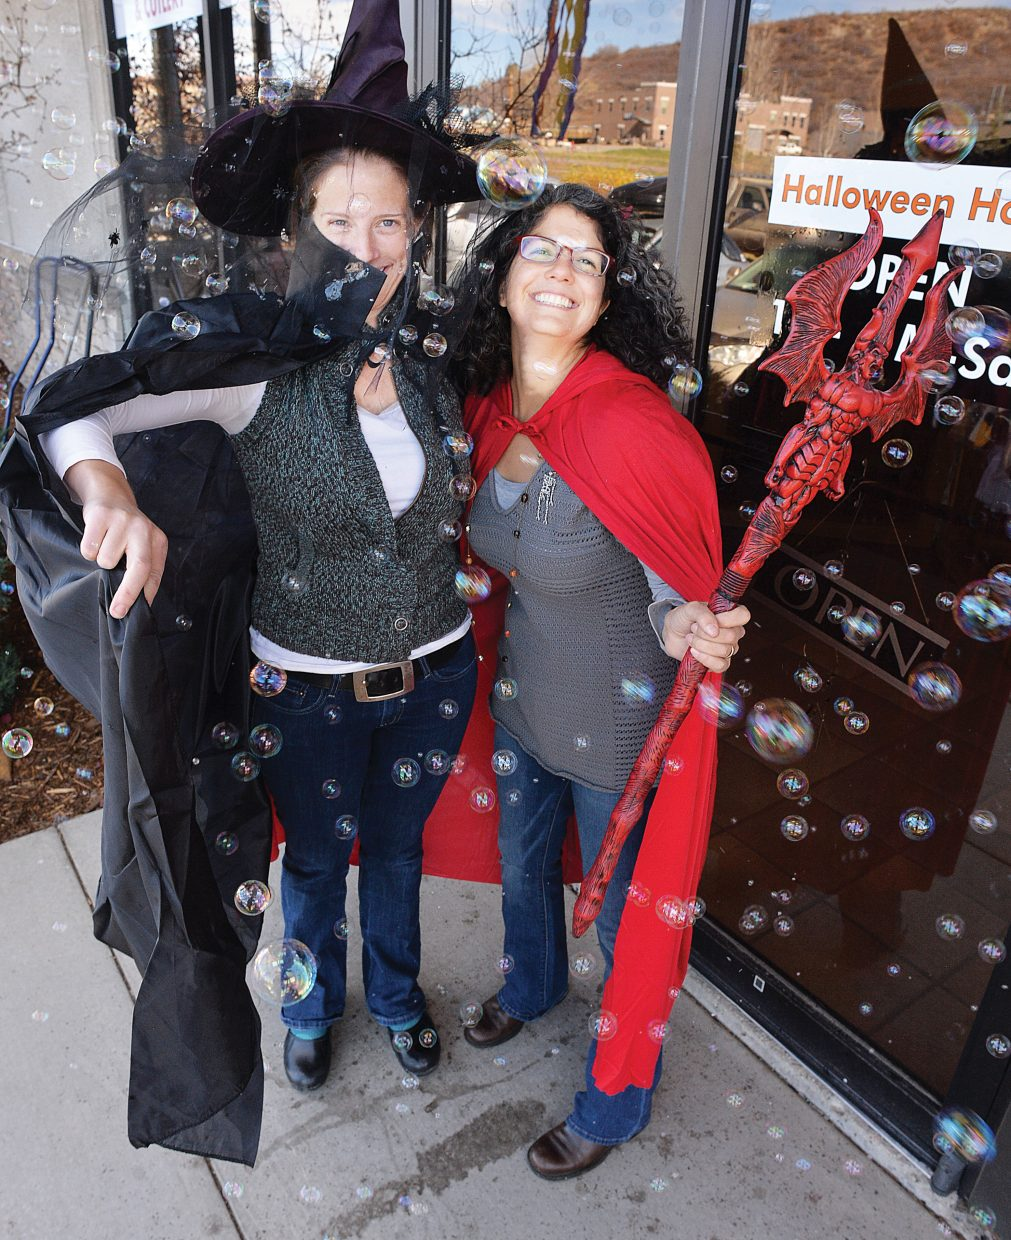 Colorado Event Rentals owner Torey Wodnik, left, and employee Lisa Warner goof around outside the store Tuesday afternoon in Steamboat Springs. The business has stocked up on Halloween costumes and is expecting things to get pretty busy the next few days as All Hallows' Eve draws closer. There will be plenty to do this Friday as locals celebrate the holiday in Steamboat Springs.